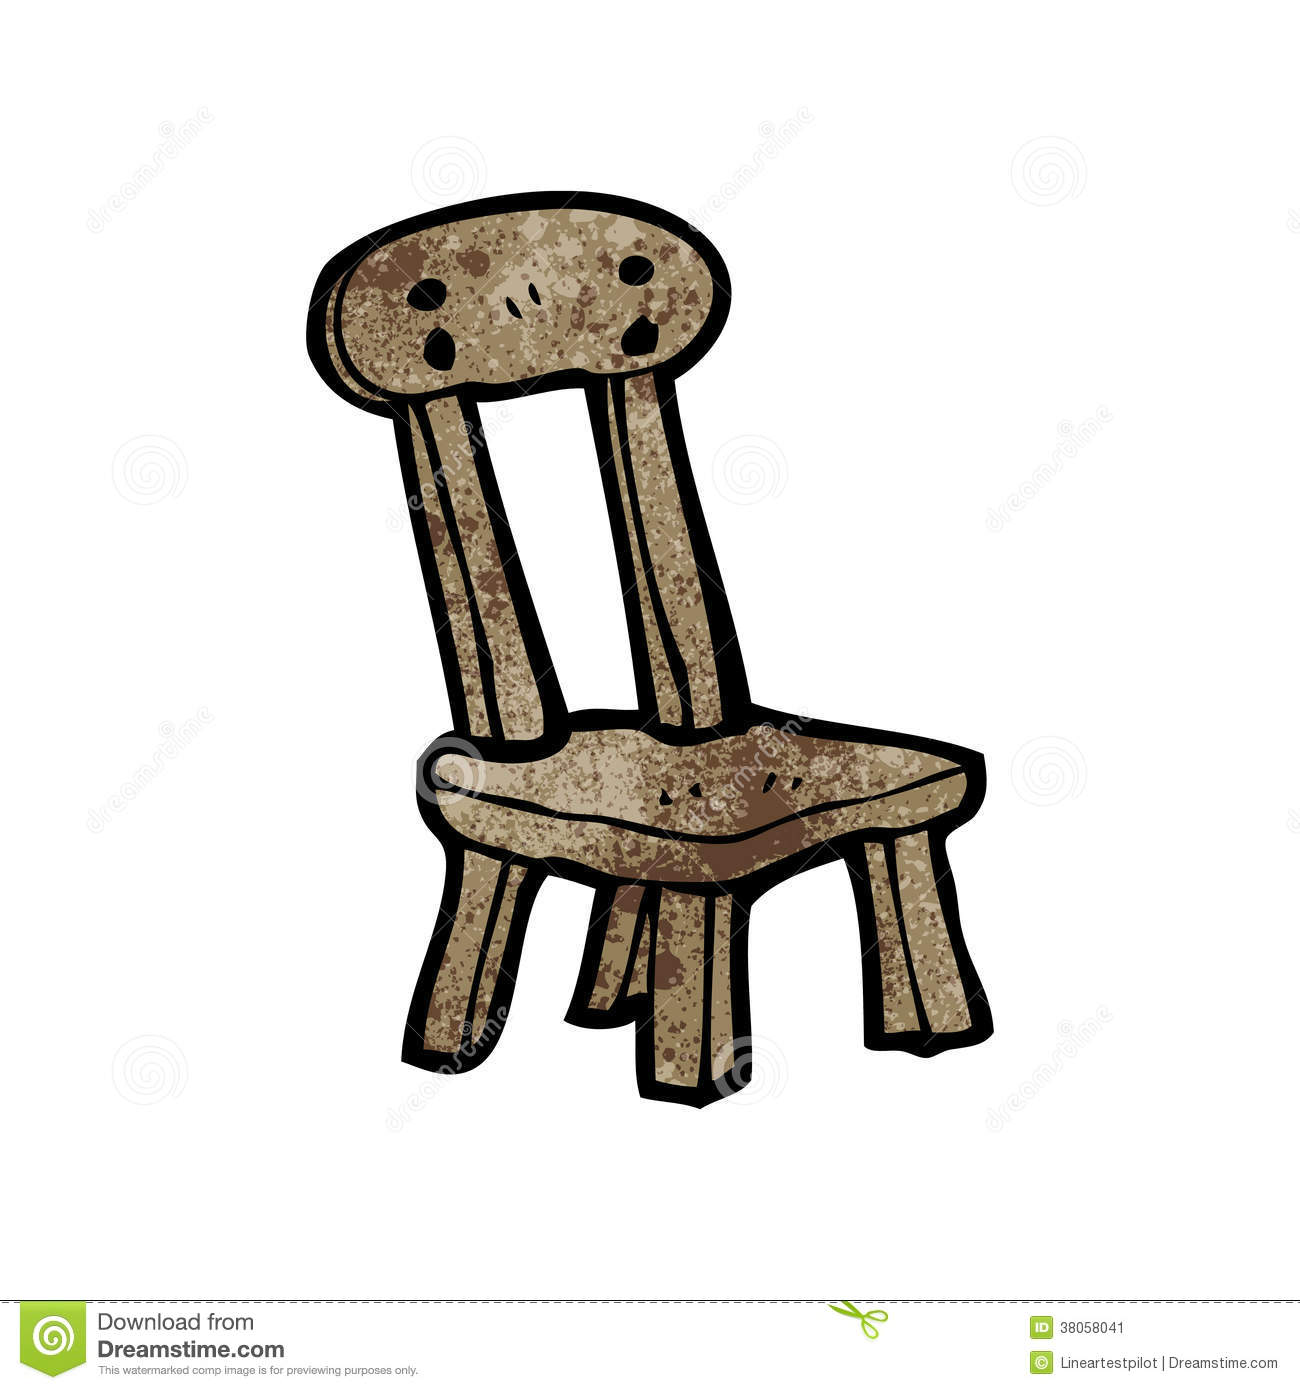 Cartoon old wooden chair stock image